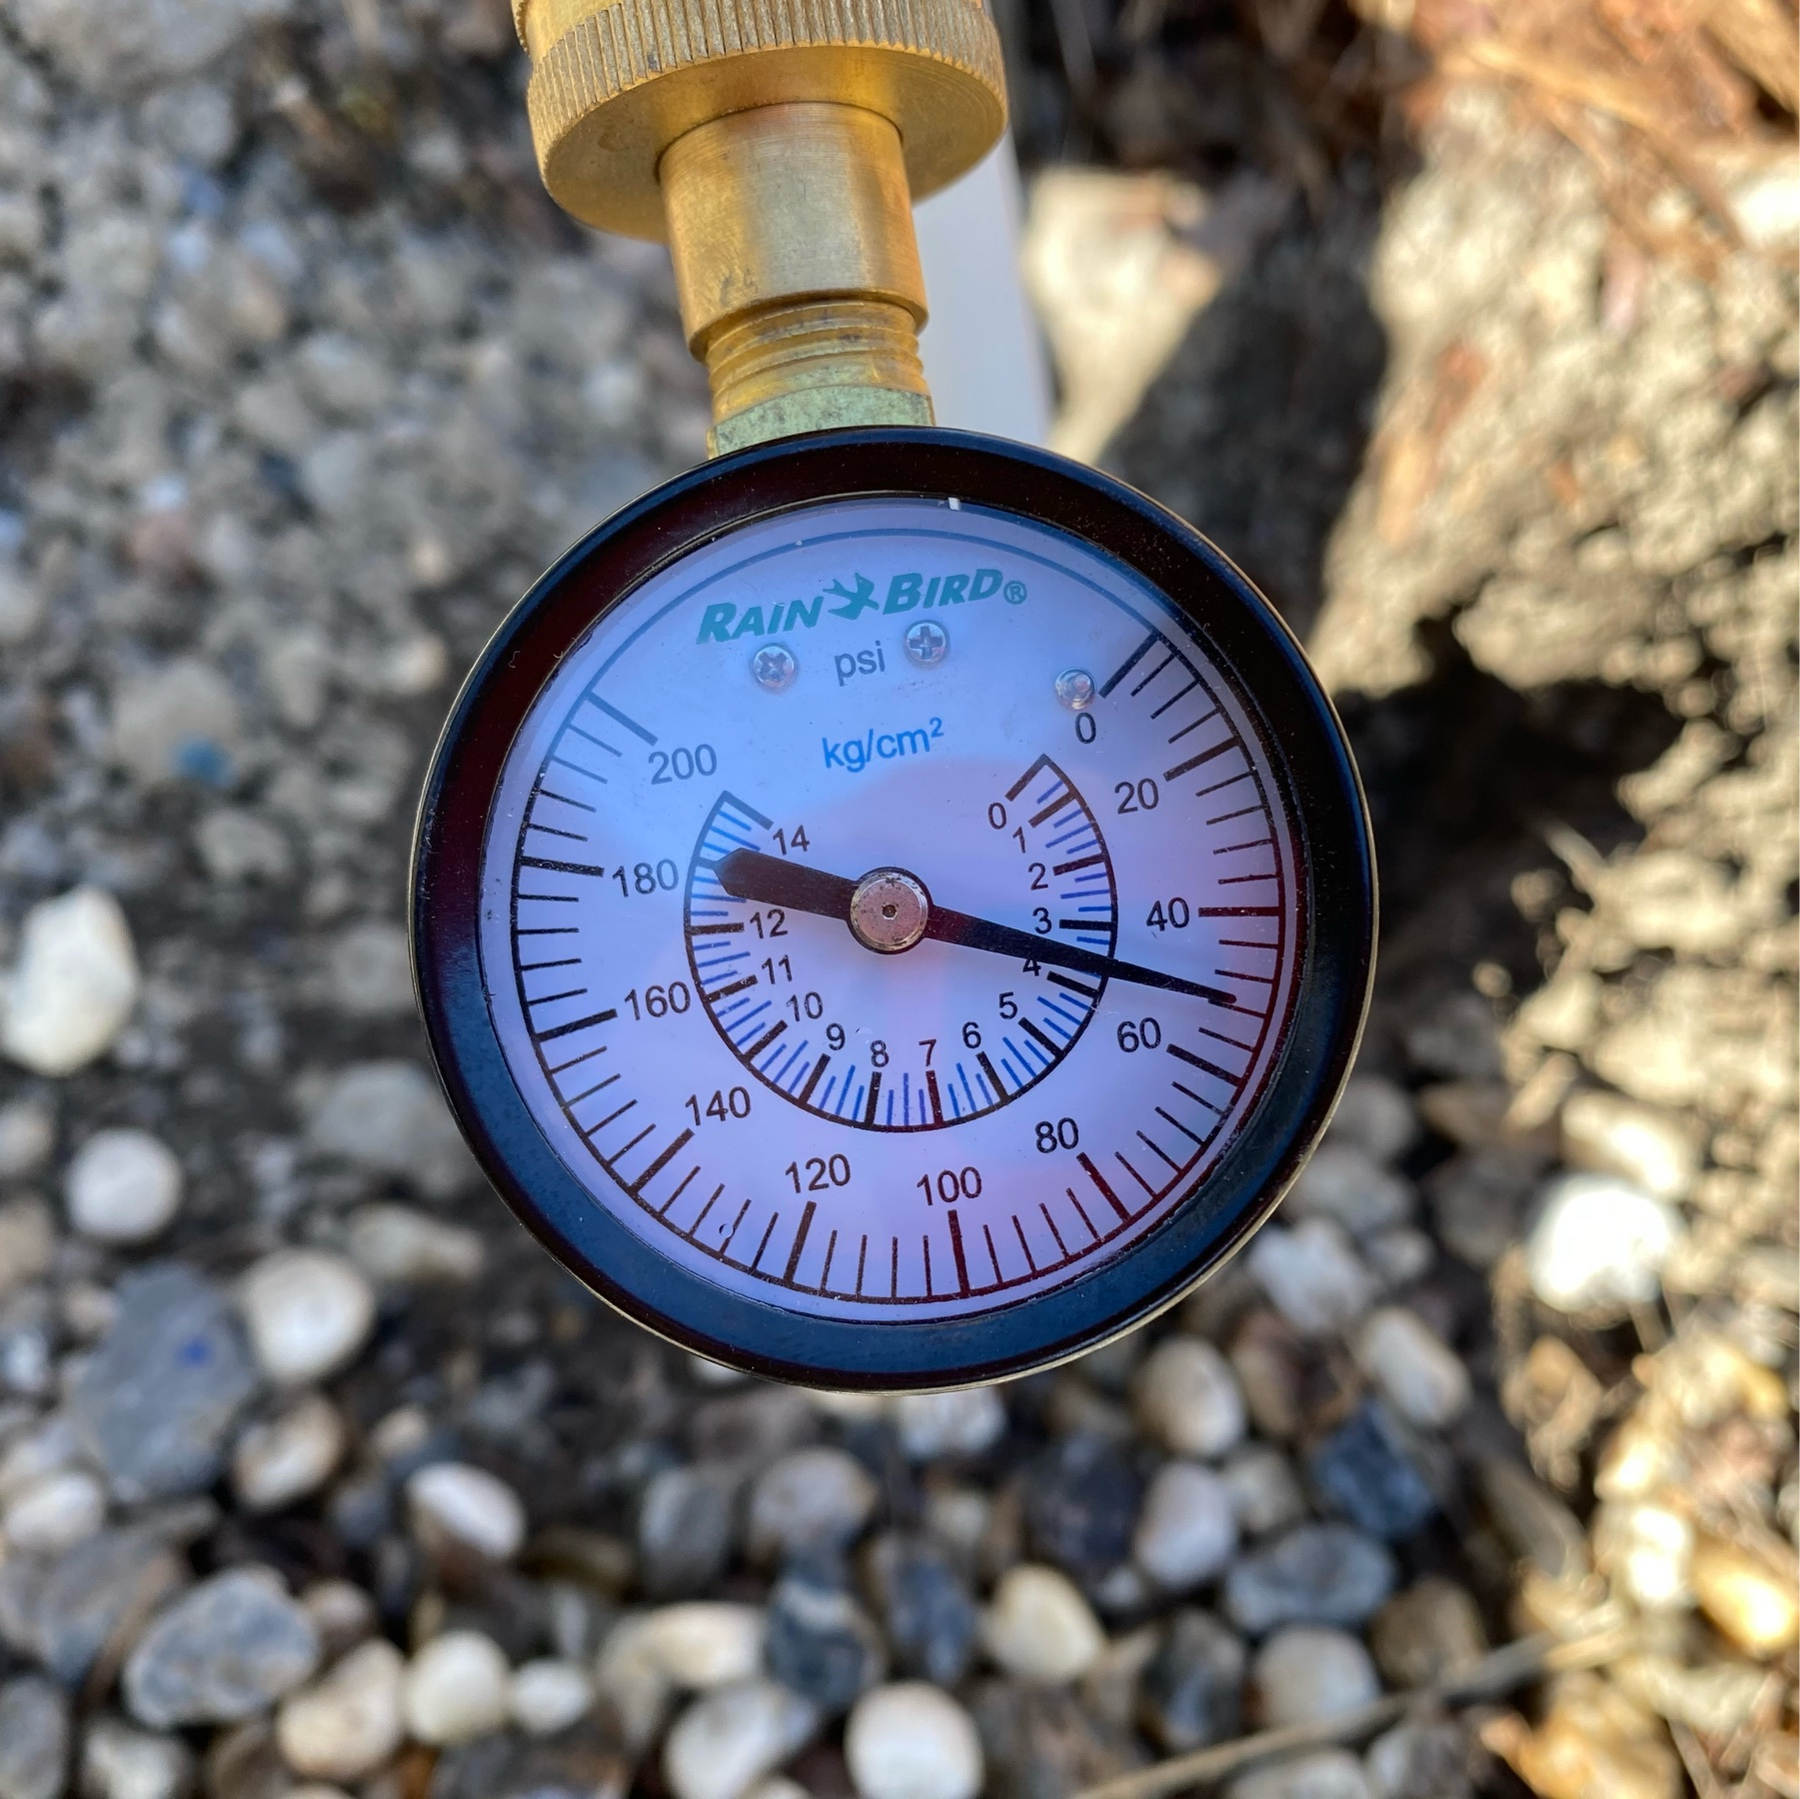 pressure gauge showing a reading of about 50 PSI.